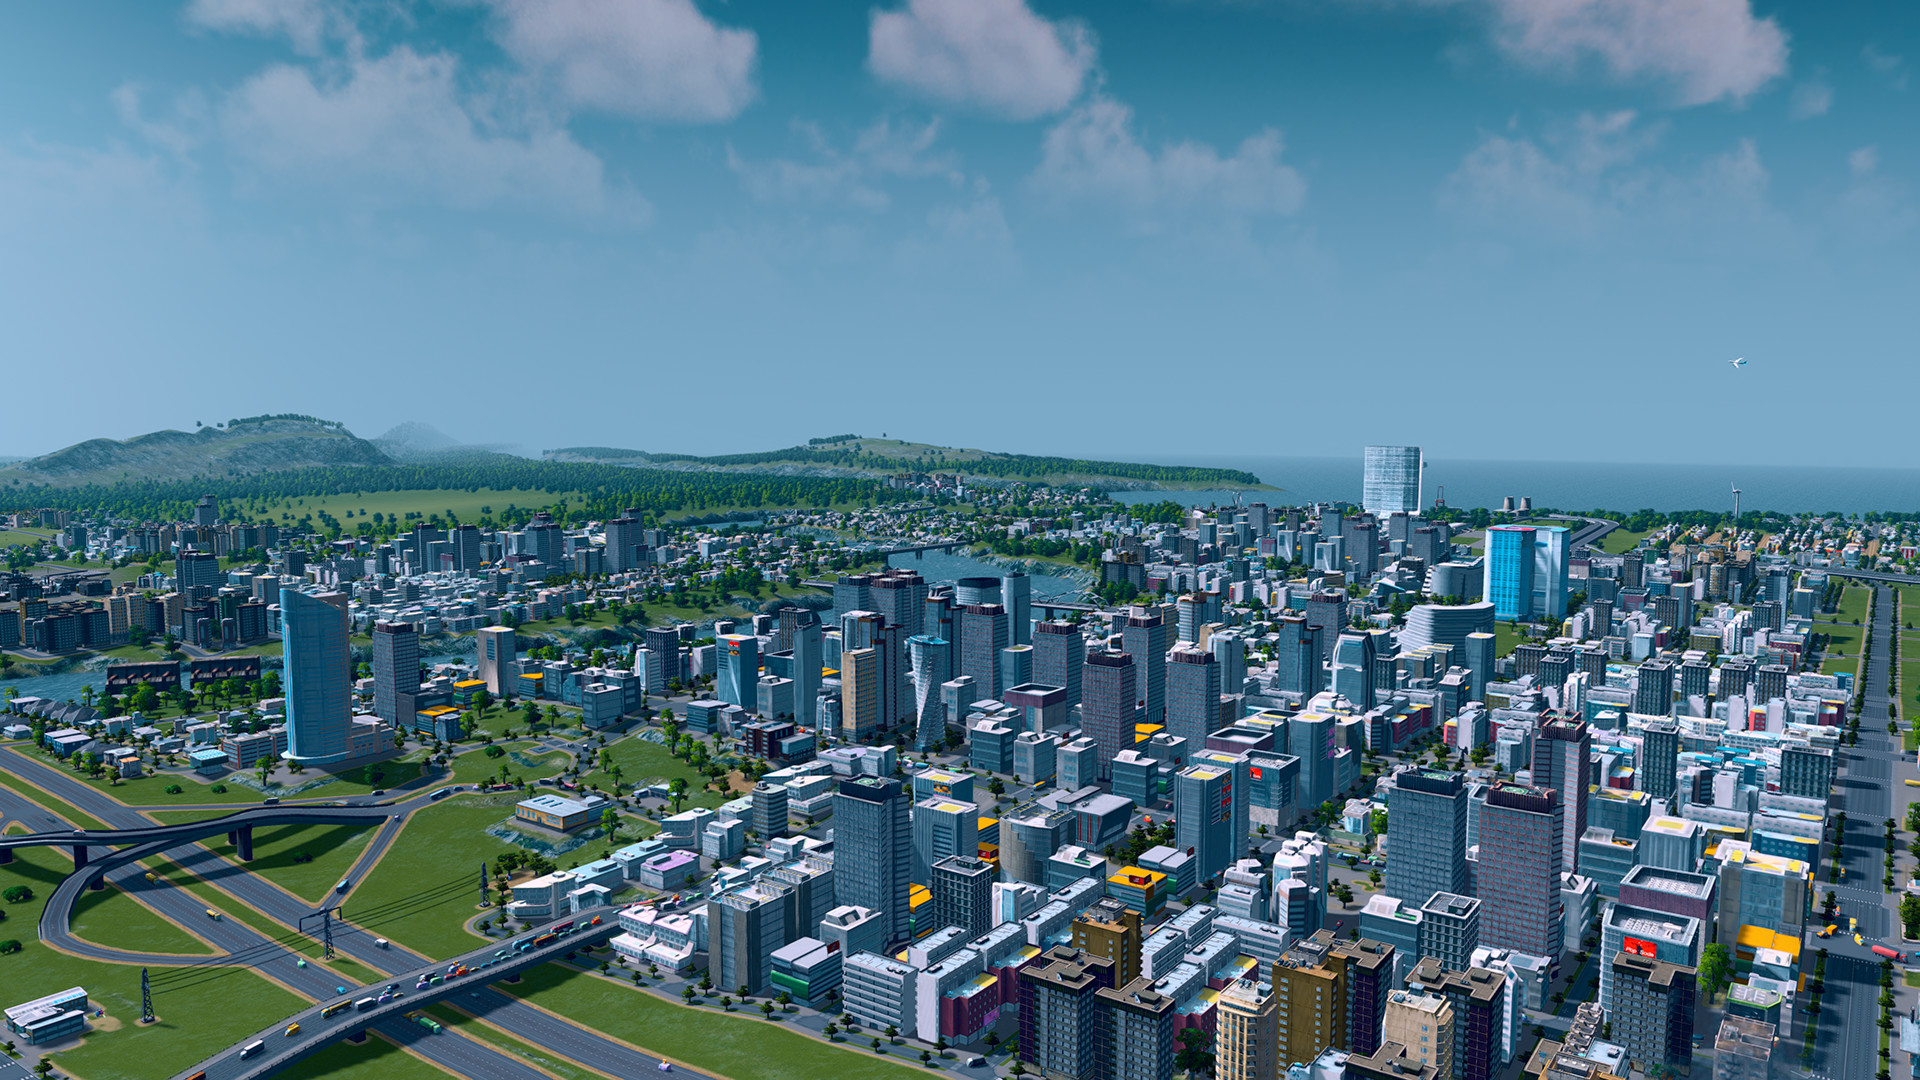 A screenshot of an urban landscape in Cities Skylines.